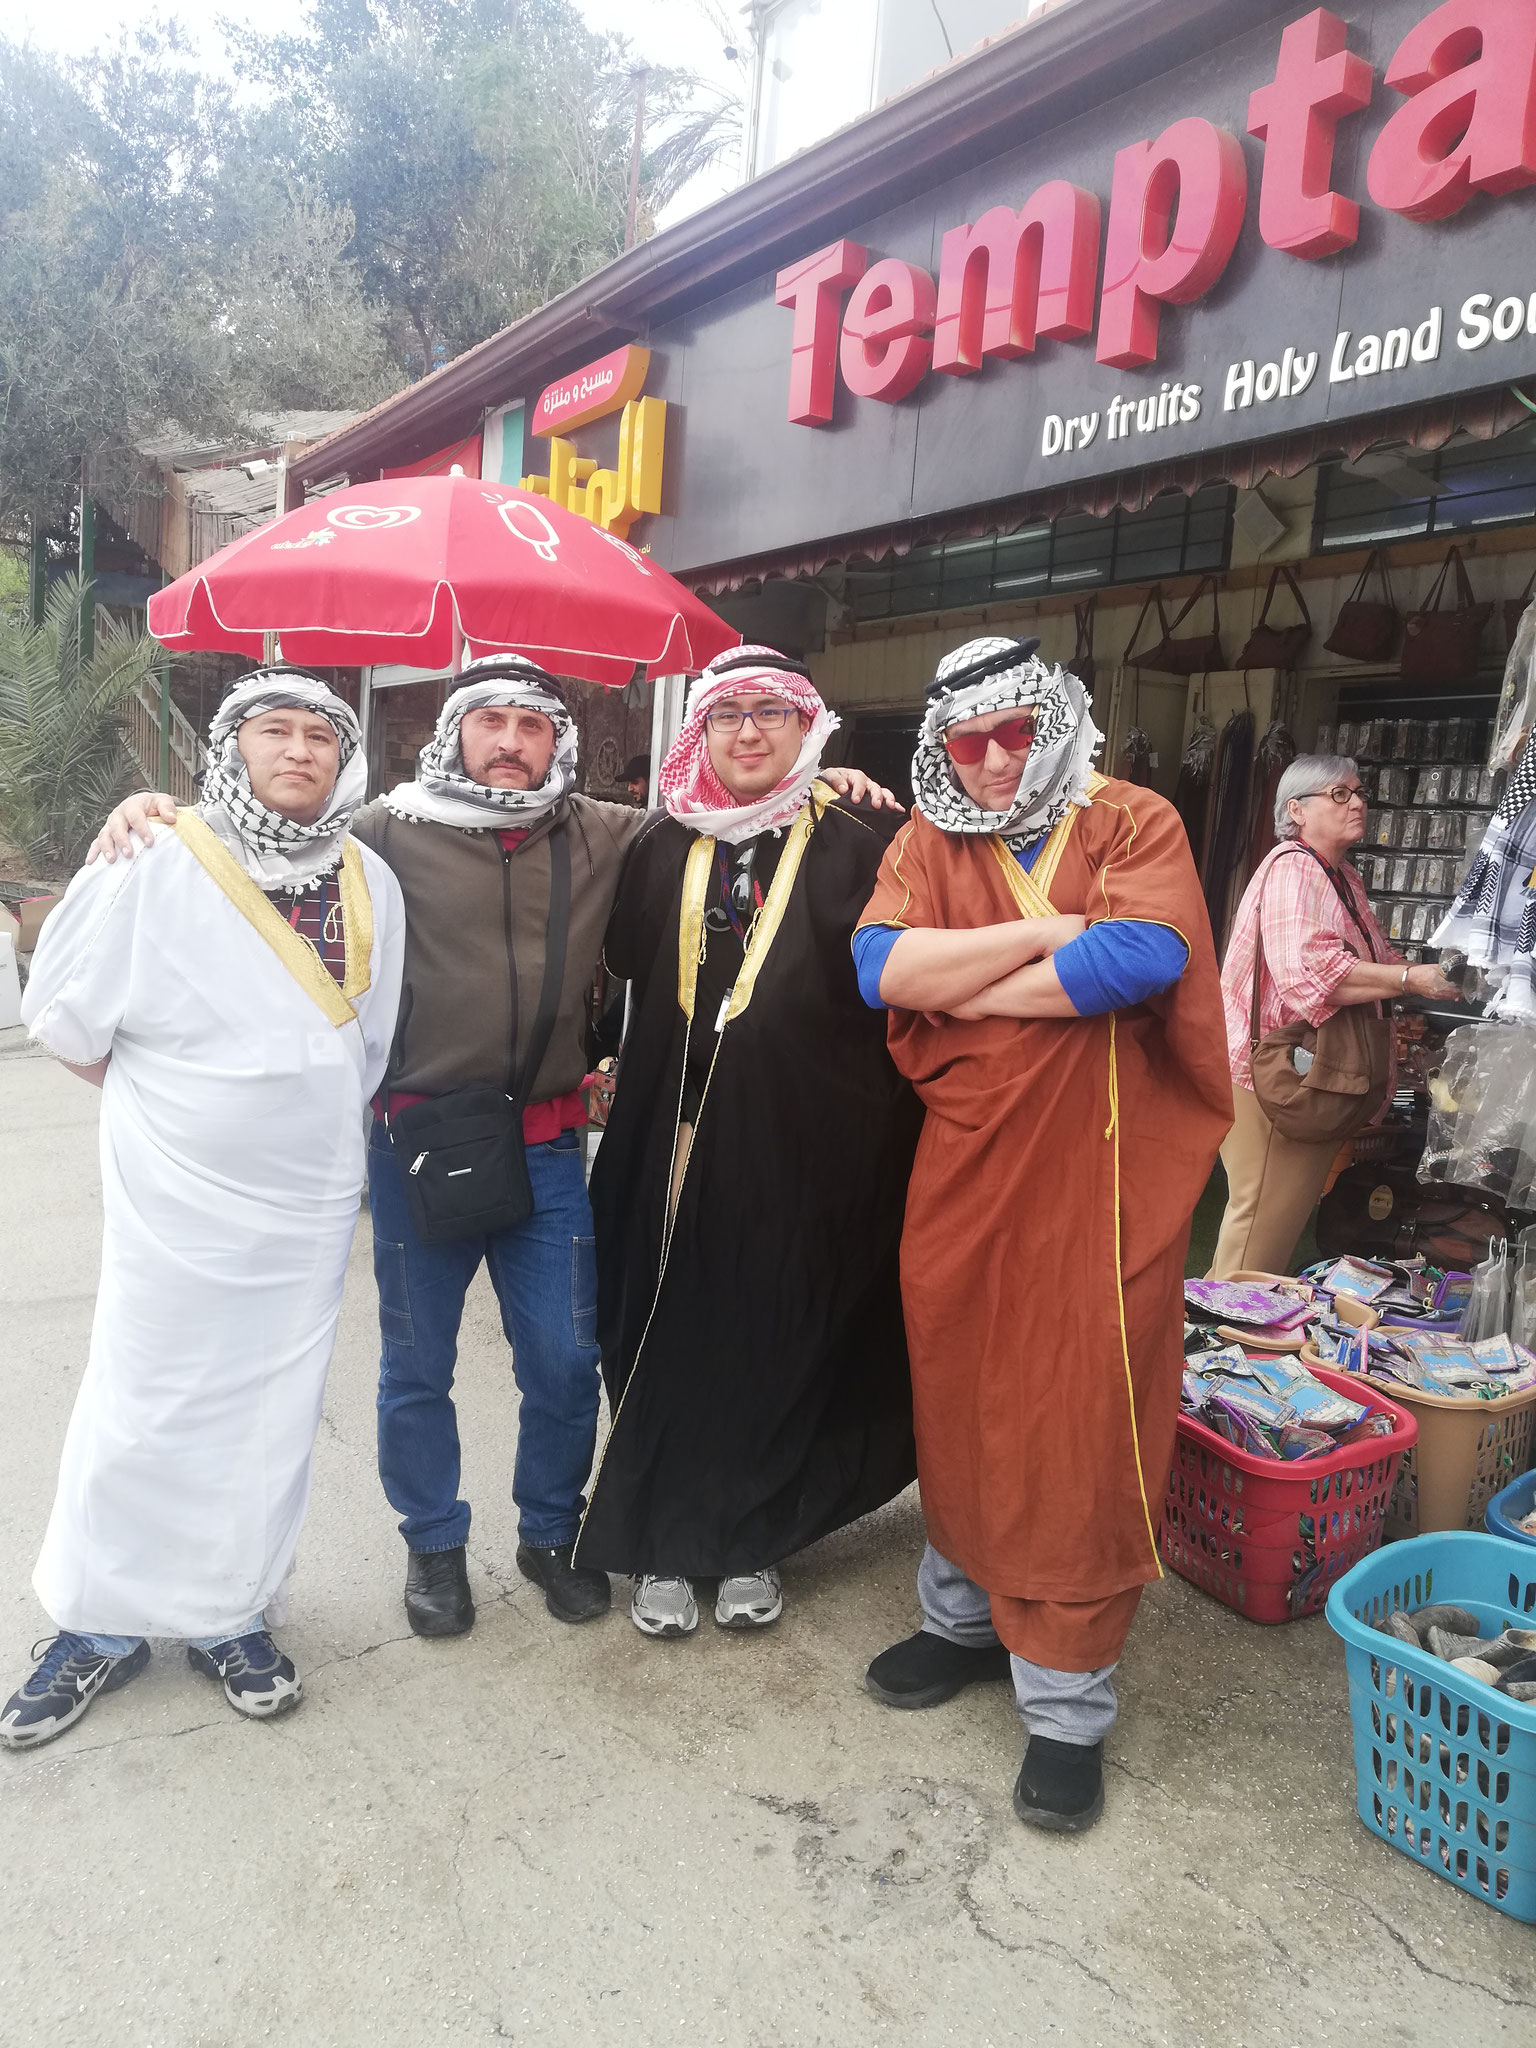 With the Native Americans dressed up like Native Bedouins